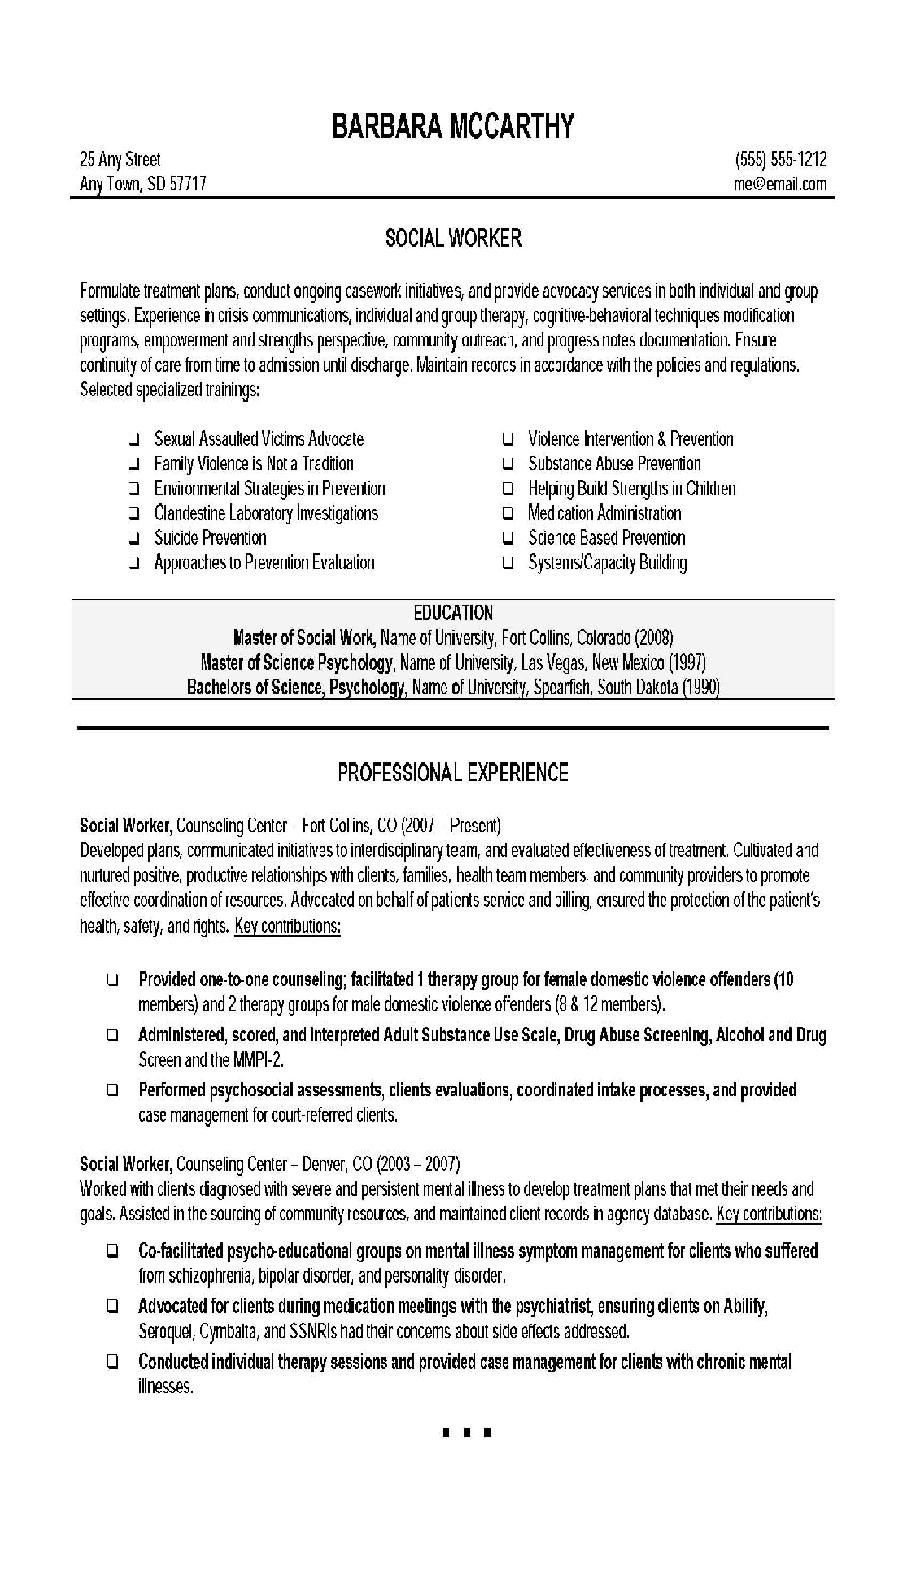 social worker resume template this cv template gives you an idea of how to lay out your skills and experience if youre applying for a role as a